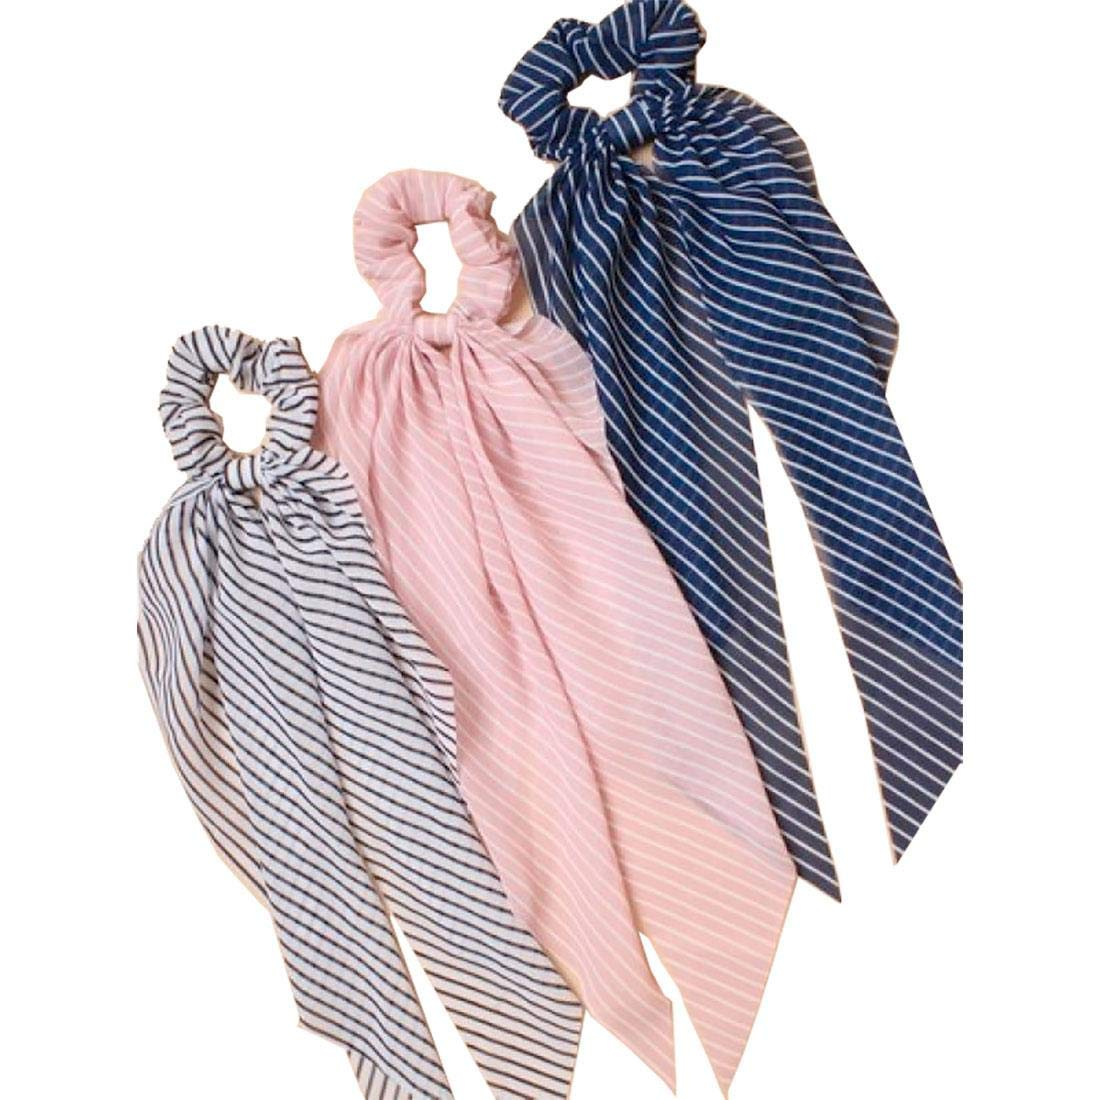 Rimi Hanger Womens Assorted Color Hair Scrunchies Hair Scarf Band Ponytail Holder Elastics Scrunchy Ties Pack of 6